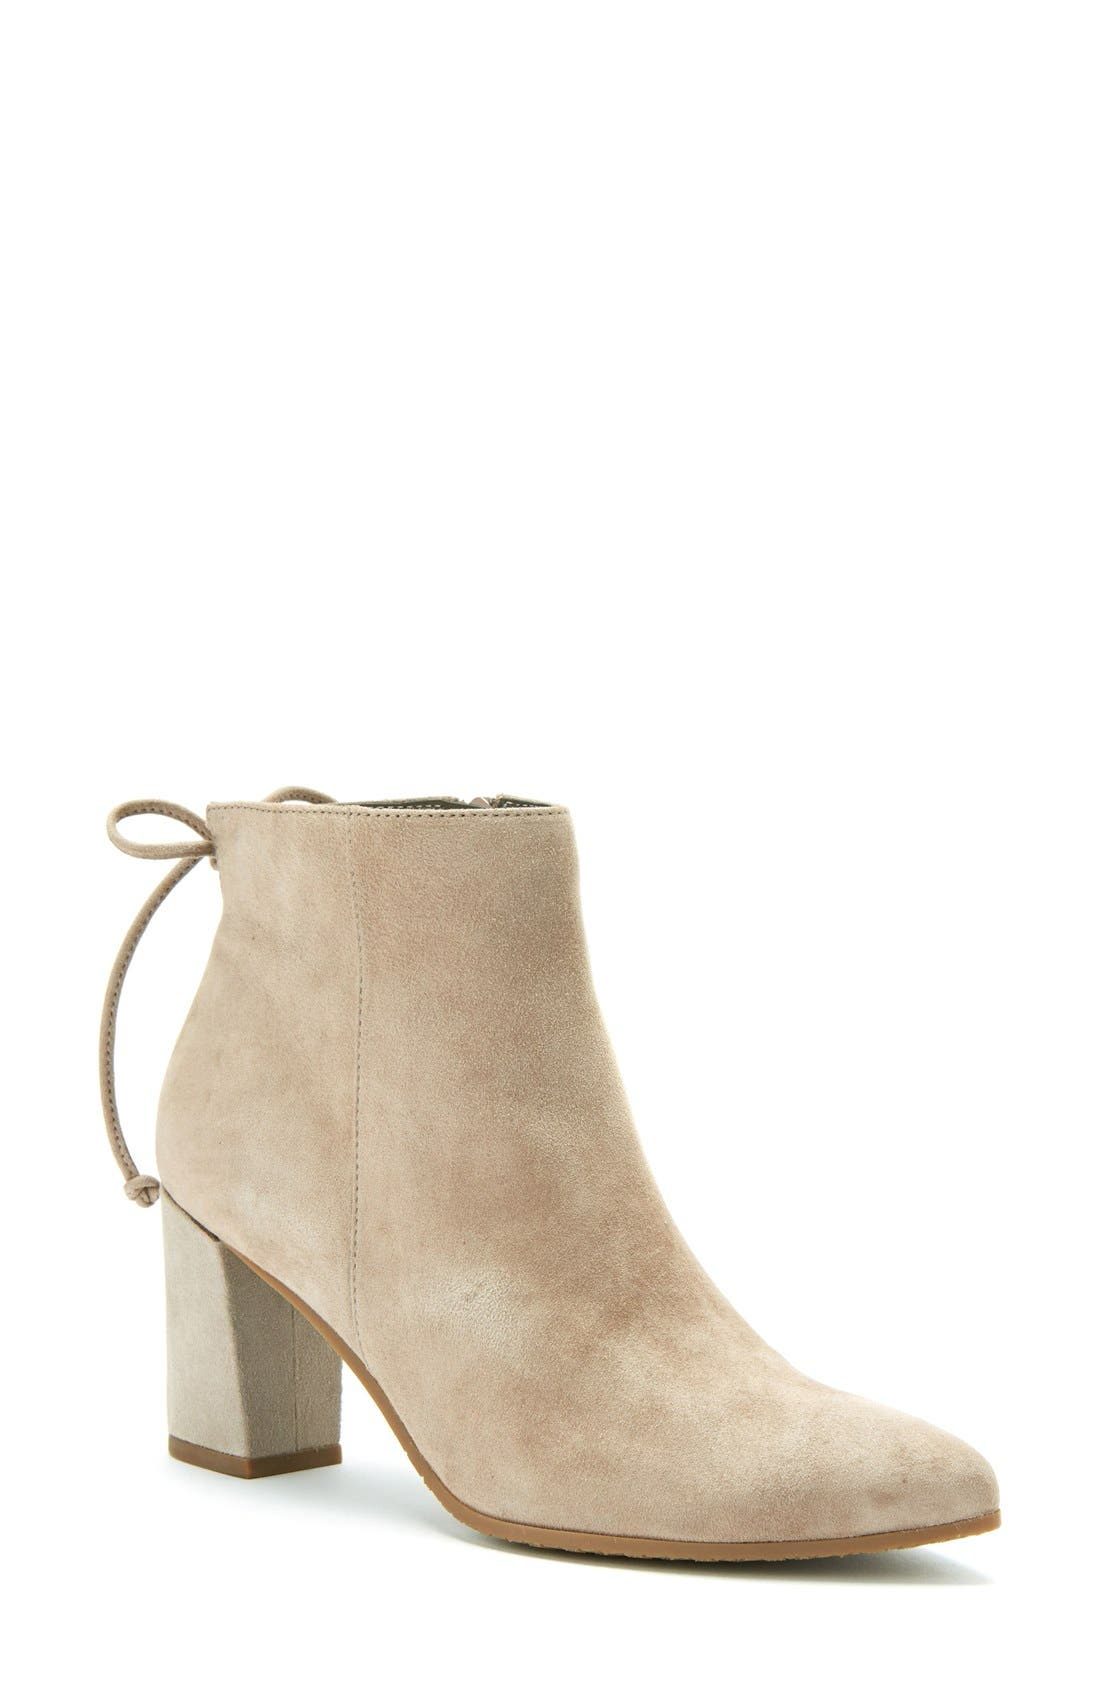 Tiana Waterproof Pointy Toe Bootie,                             Main thumbnail 2, color,